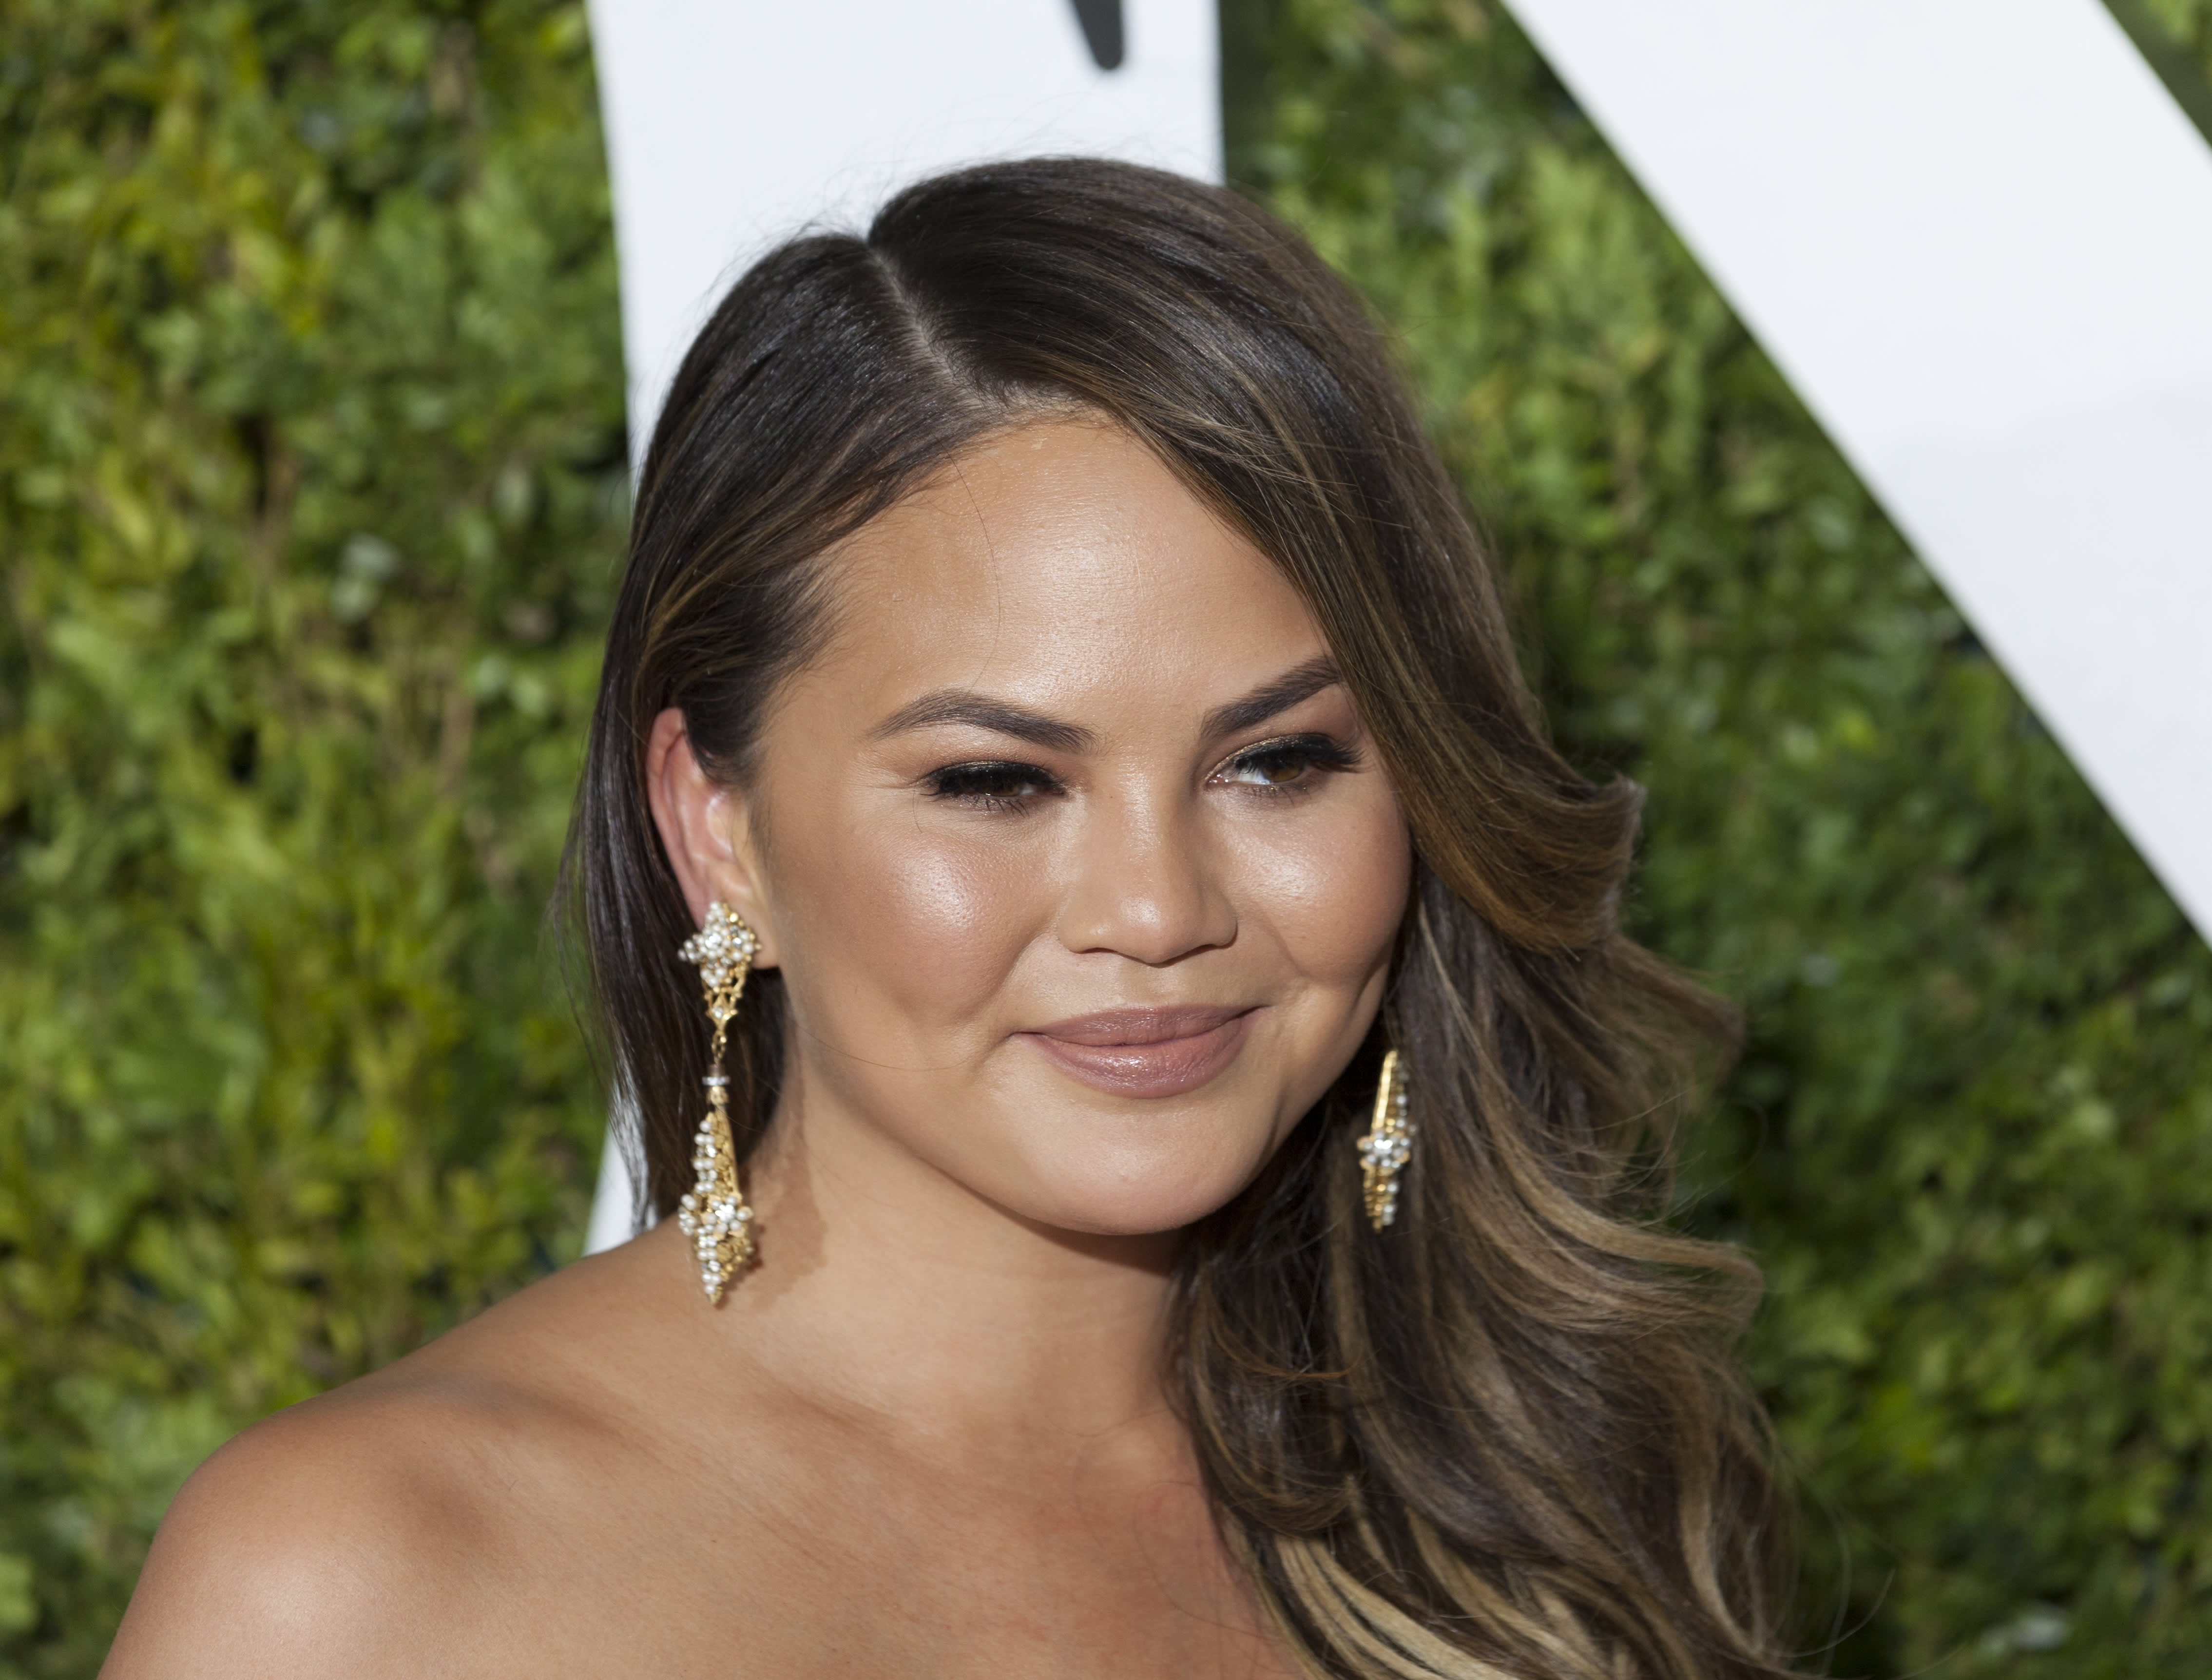 Chrissy Teigen Wants to Know: What Are Your Simple, Underrated Pleasures?